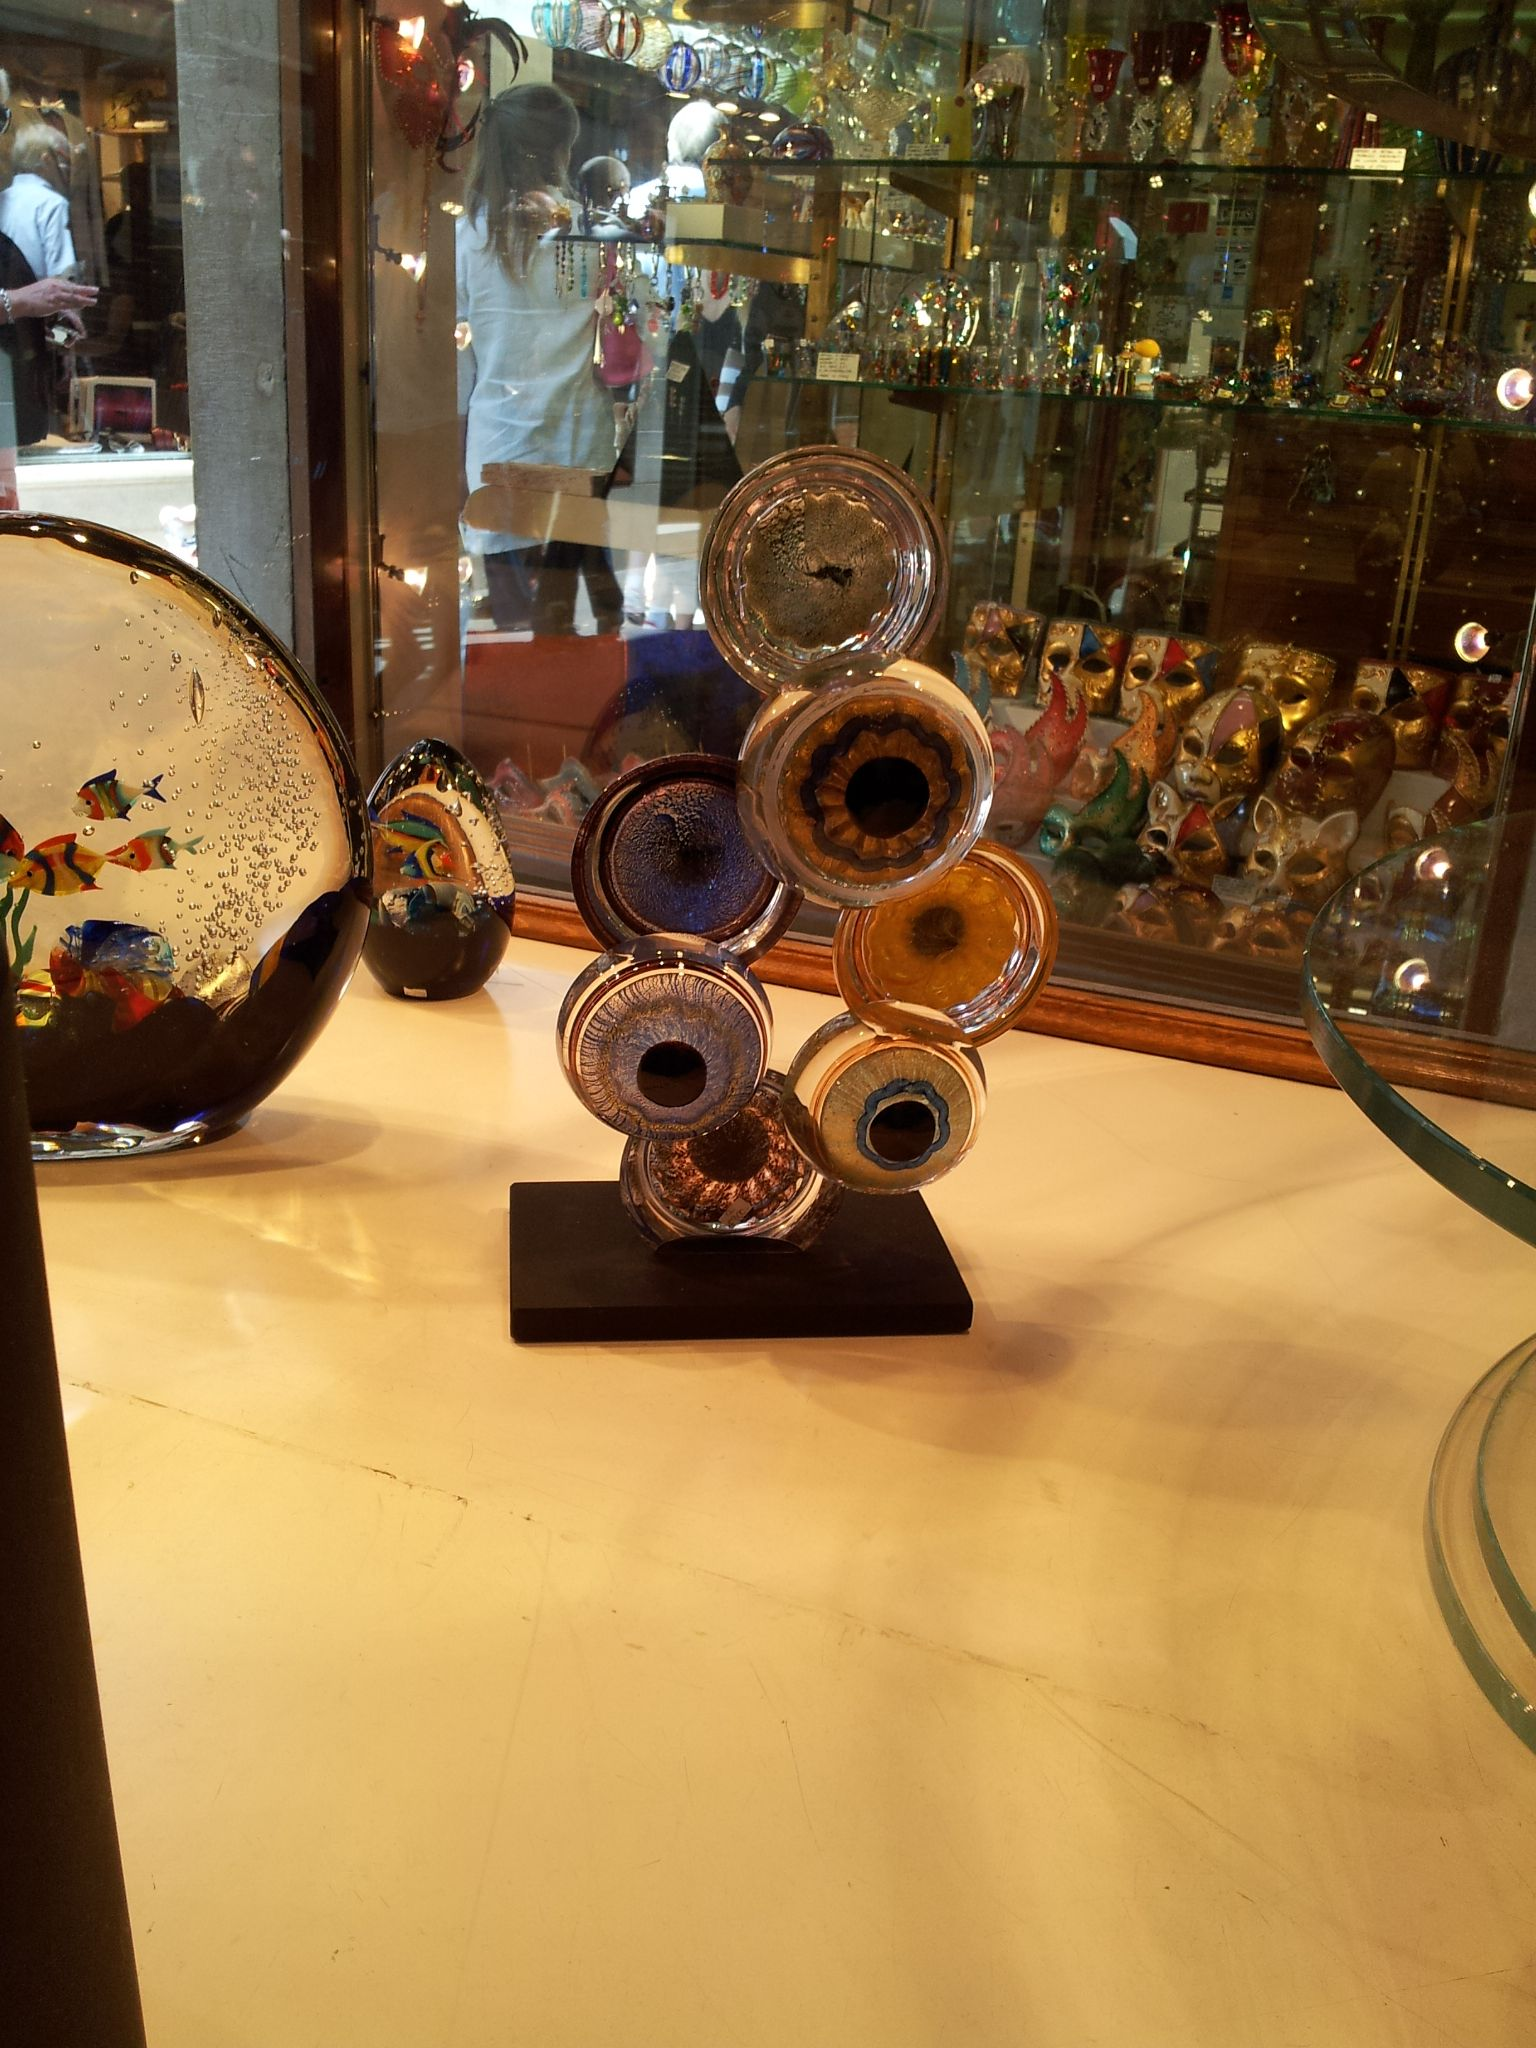 Pictures from our Murano Vitrum shops in Venice: June 2012